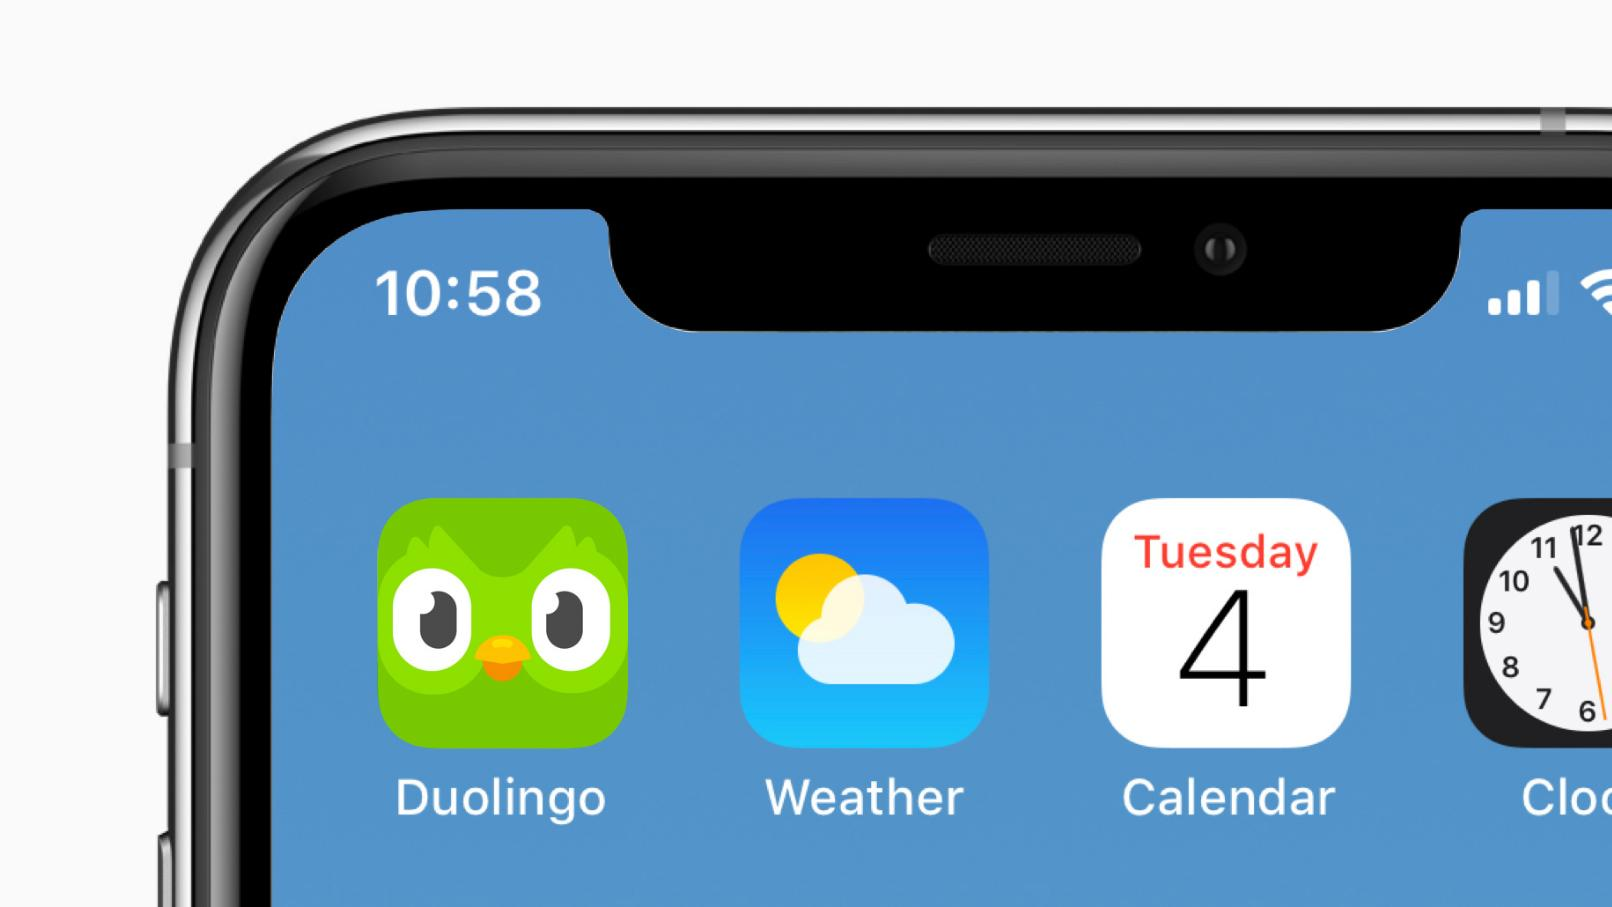 Duolingo app icon on a phone screen